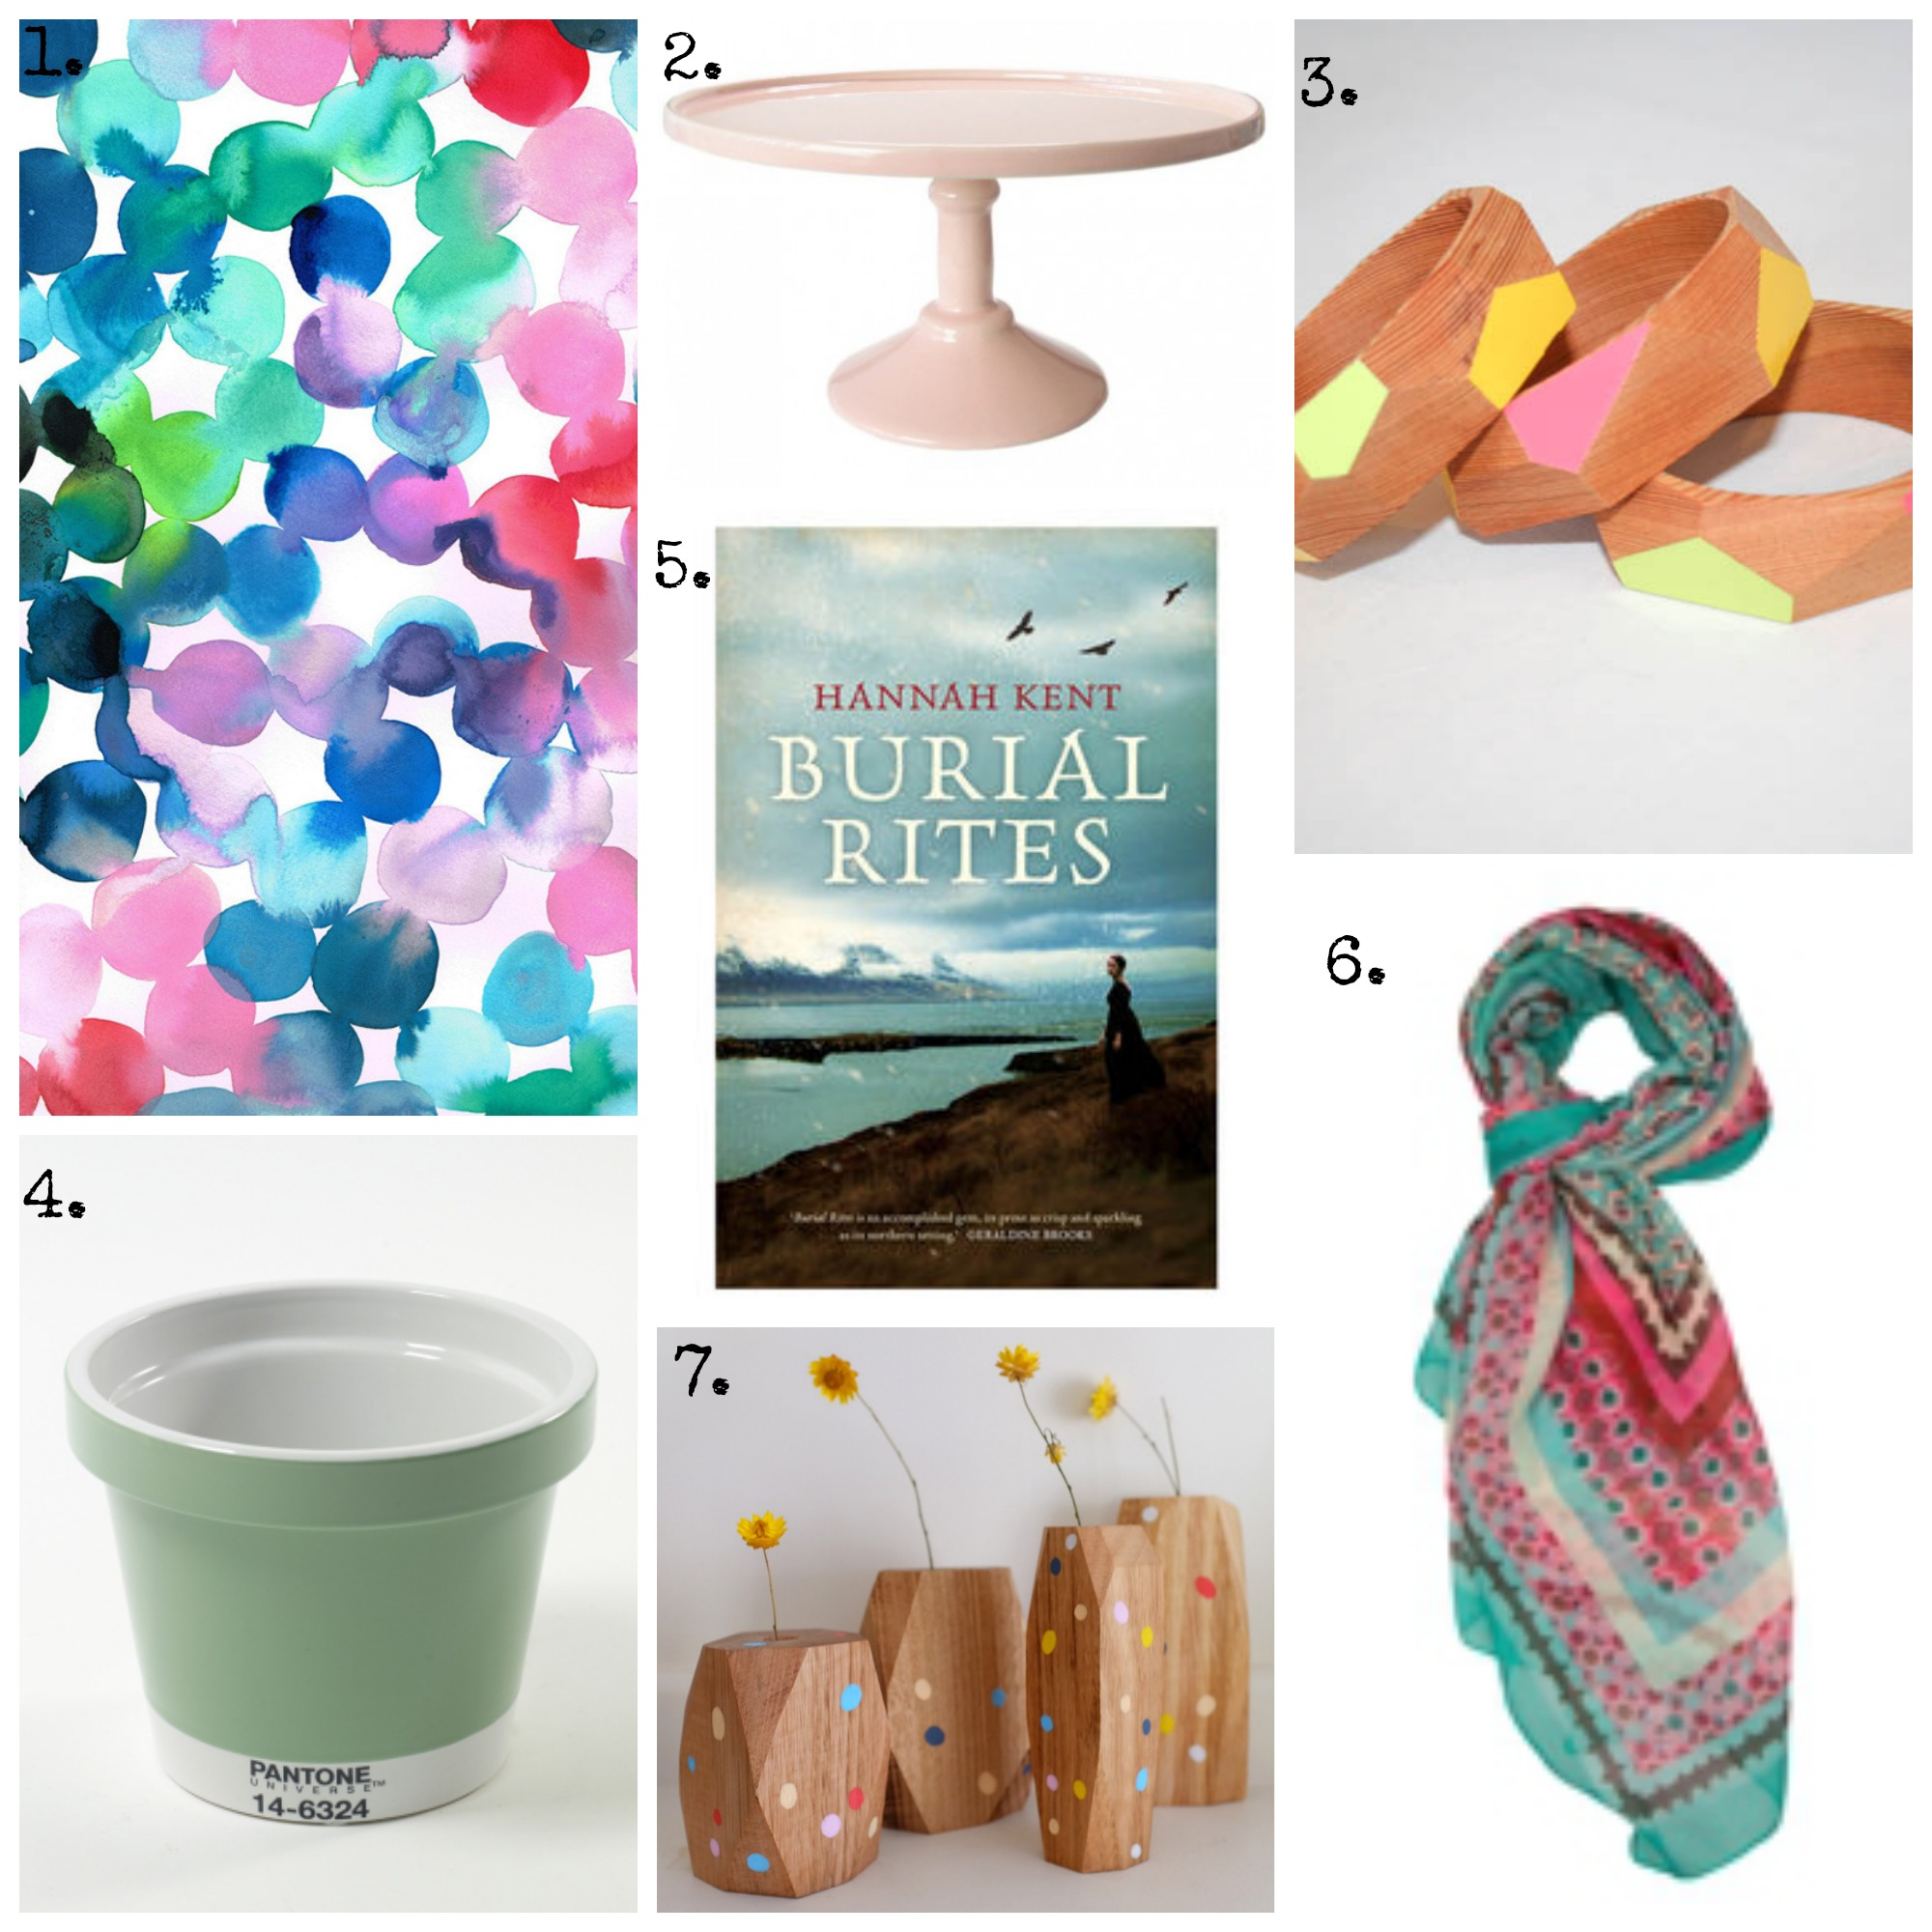 The Top 7: Gorgeous Gift Ideas For Women